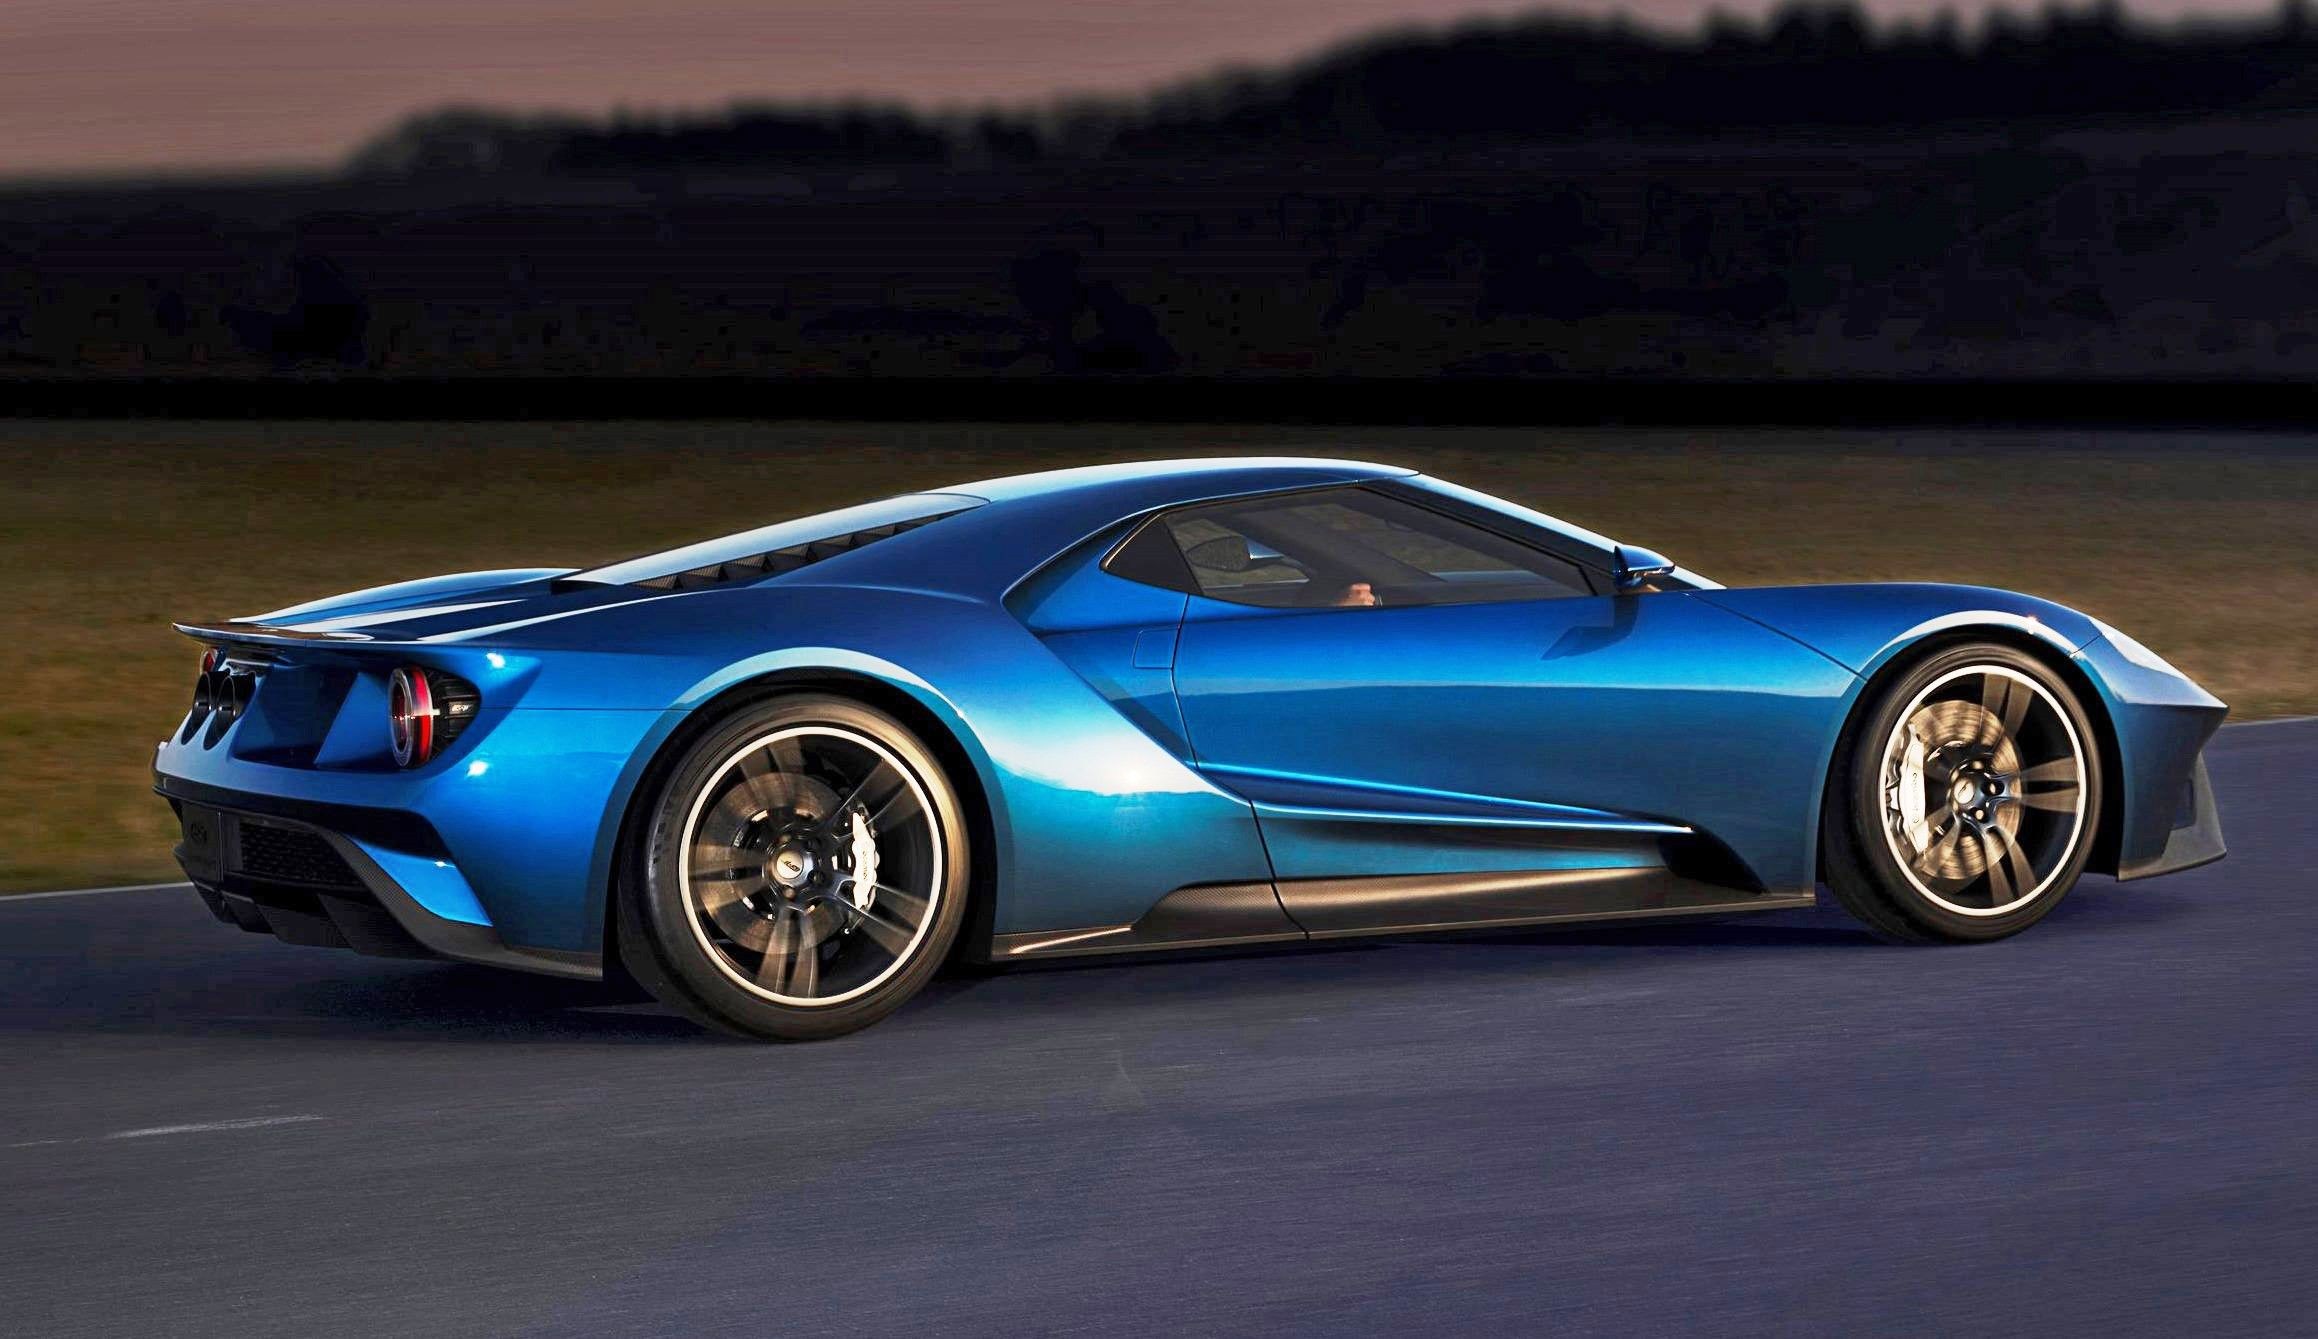 2017 Ford Gt Blue New 9 Ford Gt Ford Gt 2017 Super Cars